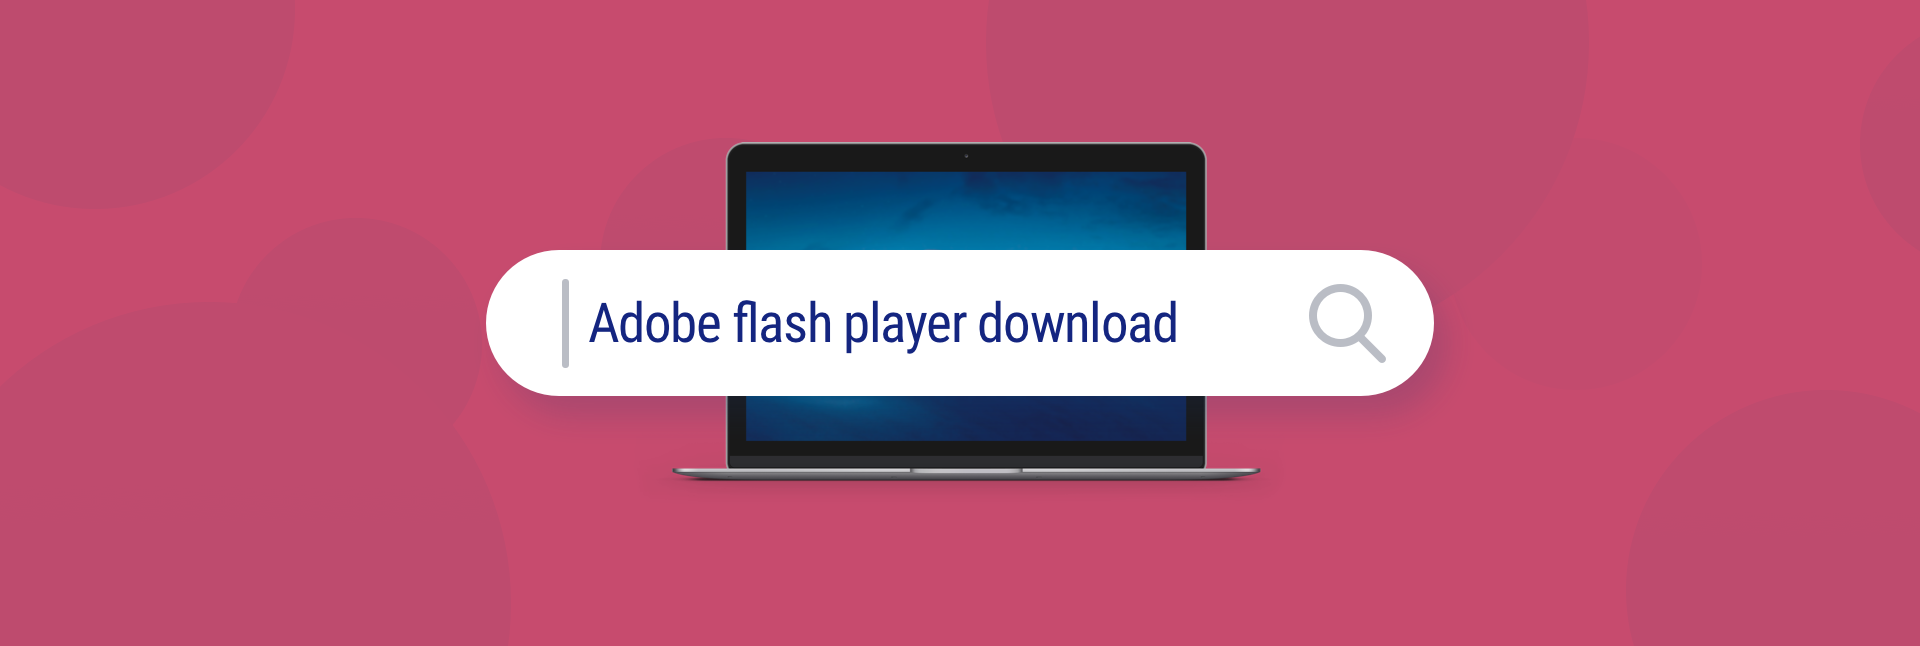 Adobe flash player for youtube latest version free download | Adobe